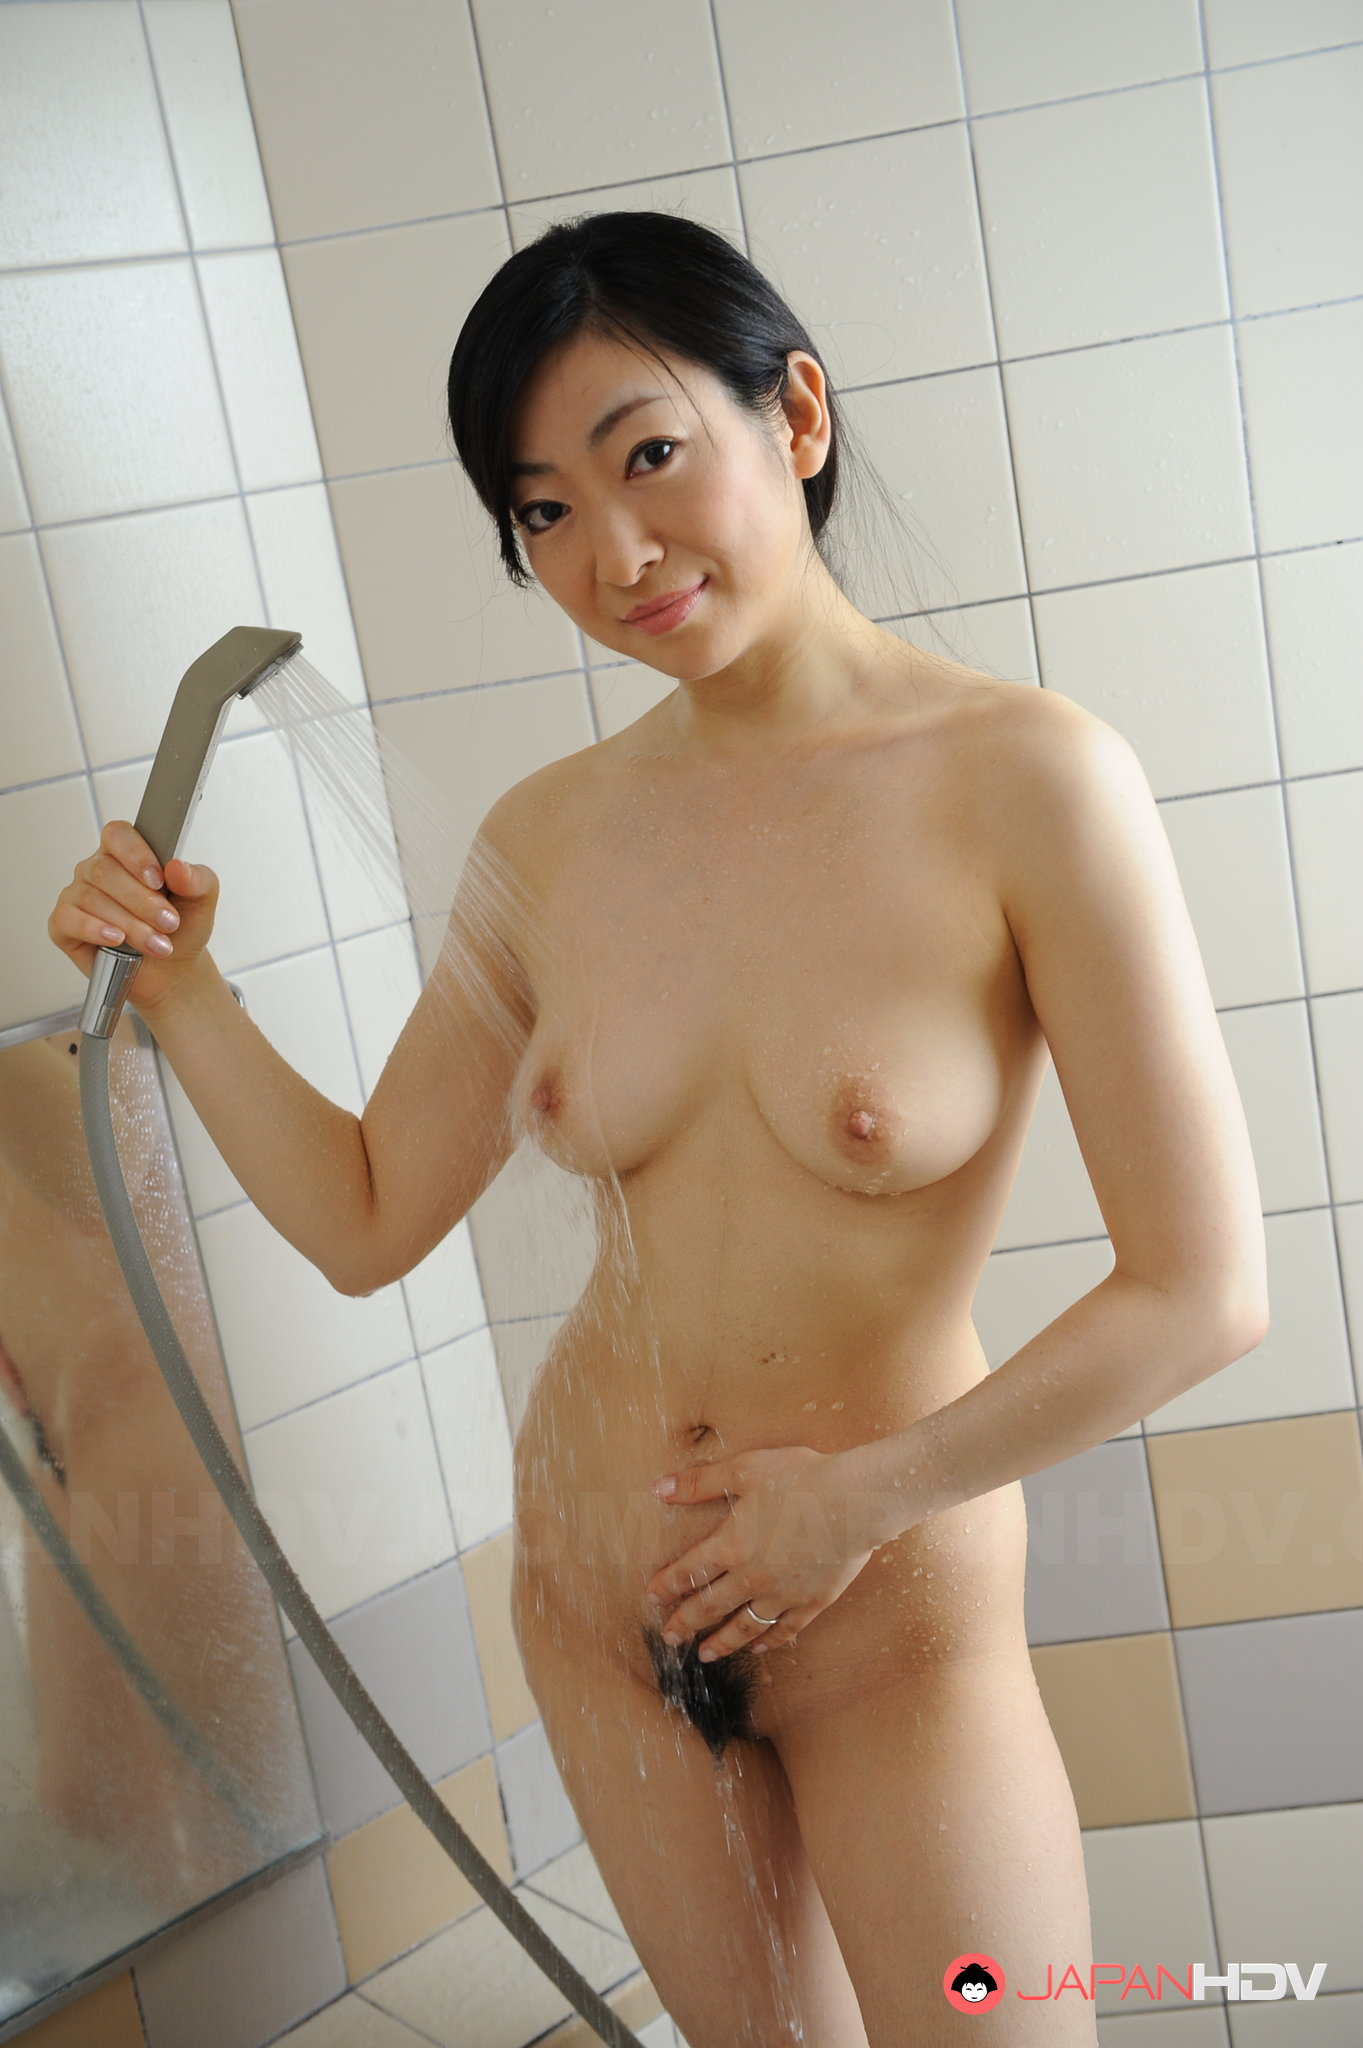 Nude Japanese Tv Shows